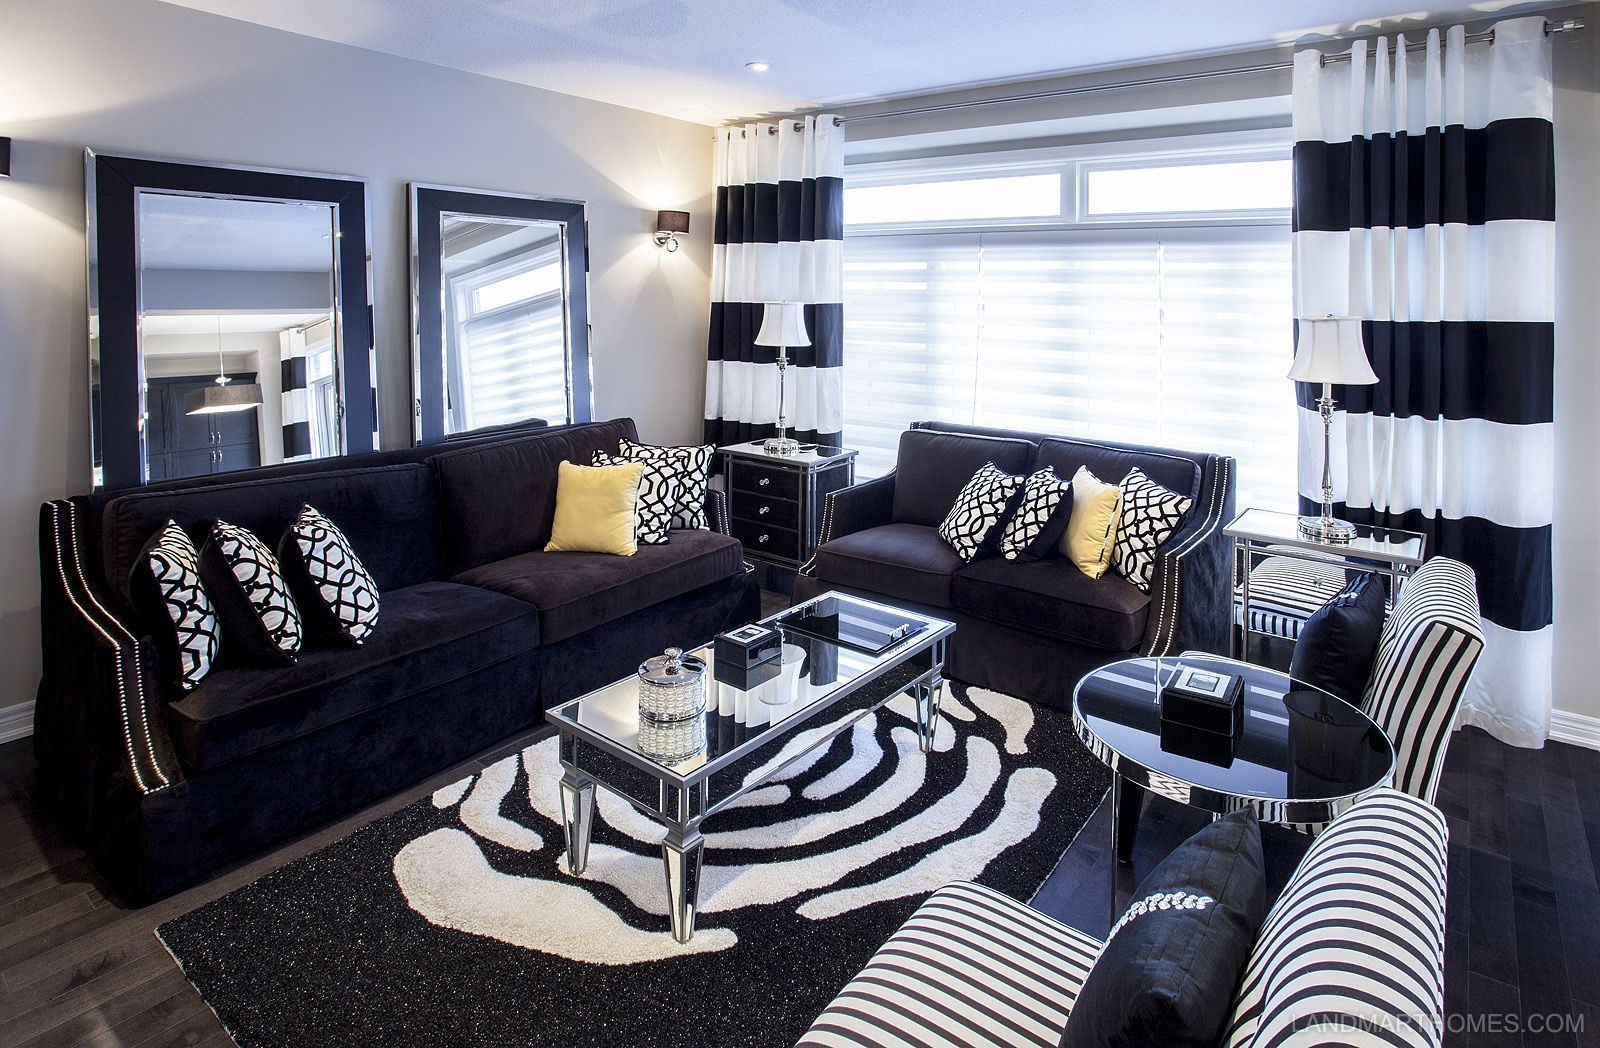 Lines and contrast make this living room interesting visually. Penny Lane  Estates in Stoney Creek